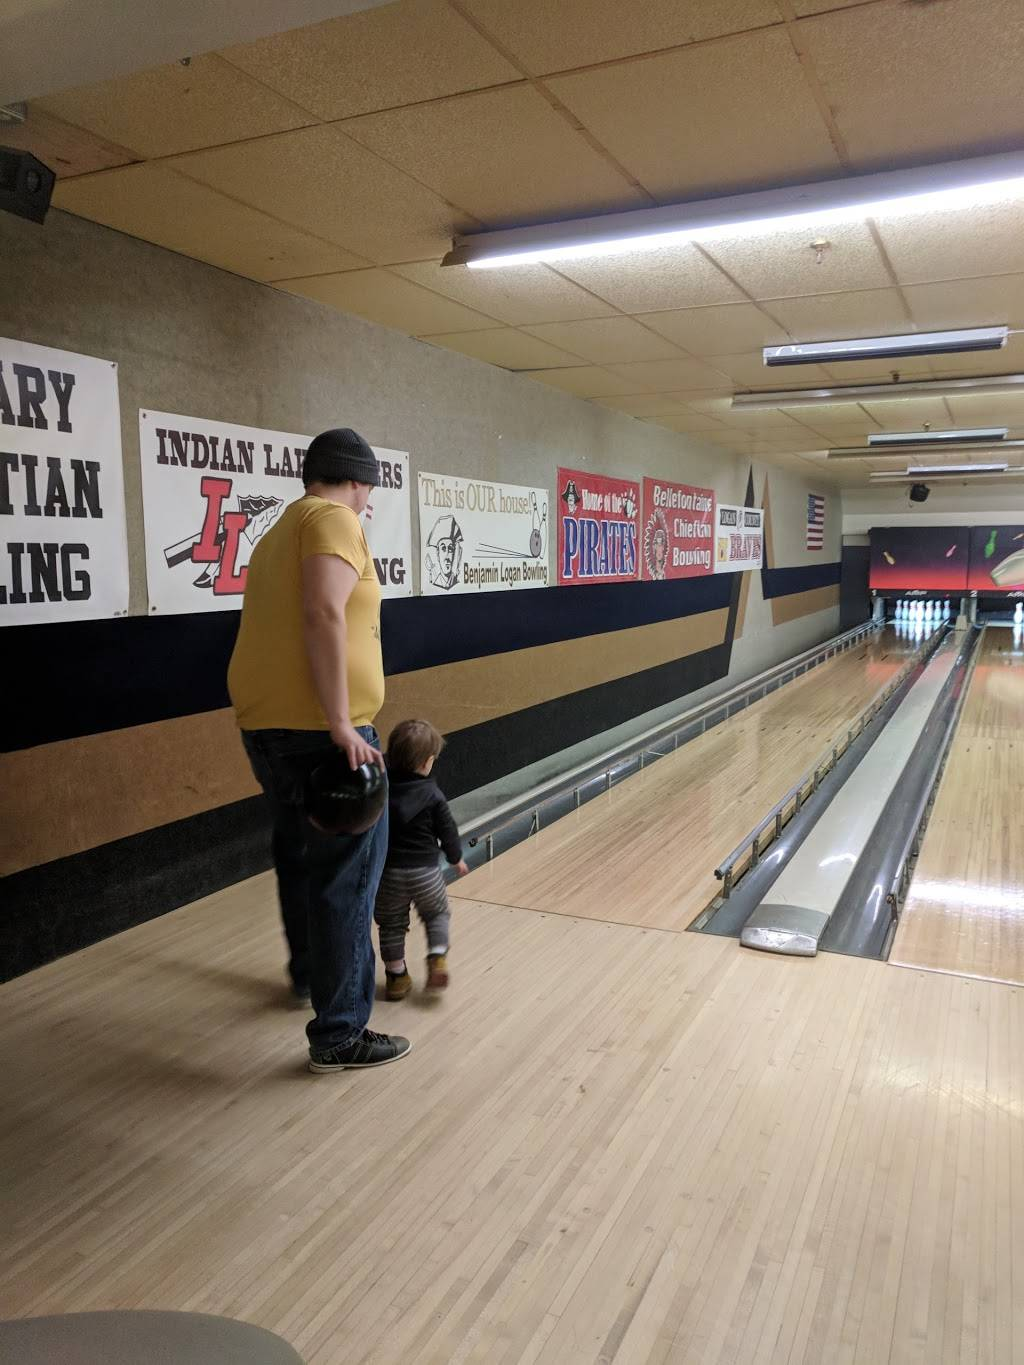 T P Bowling Lanes | restaurant | 300 E Lake Ave, Bellefontaine, OH 43311, USA | 9375991094 OR +1 937-599-1094